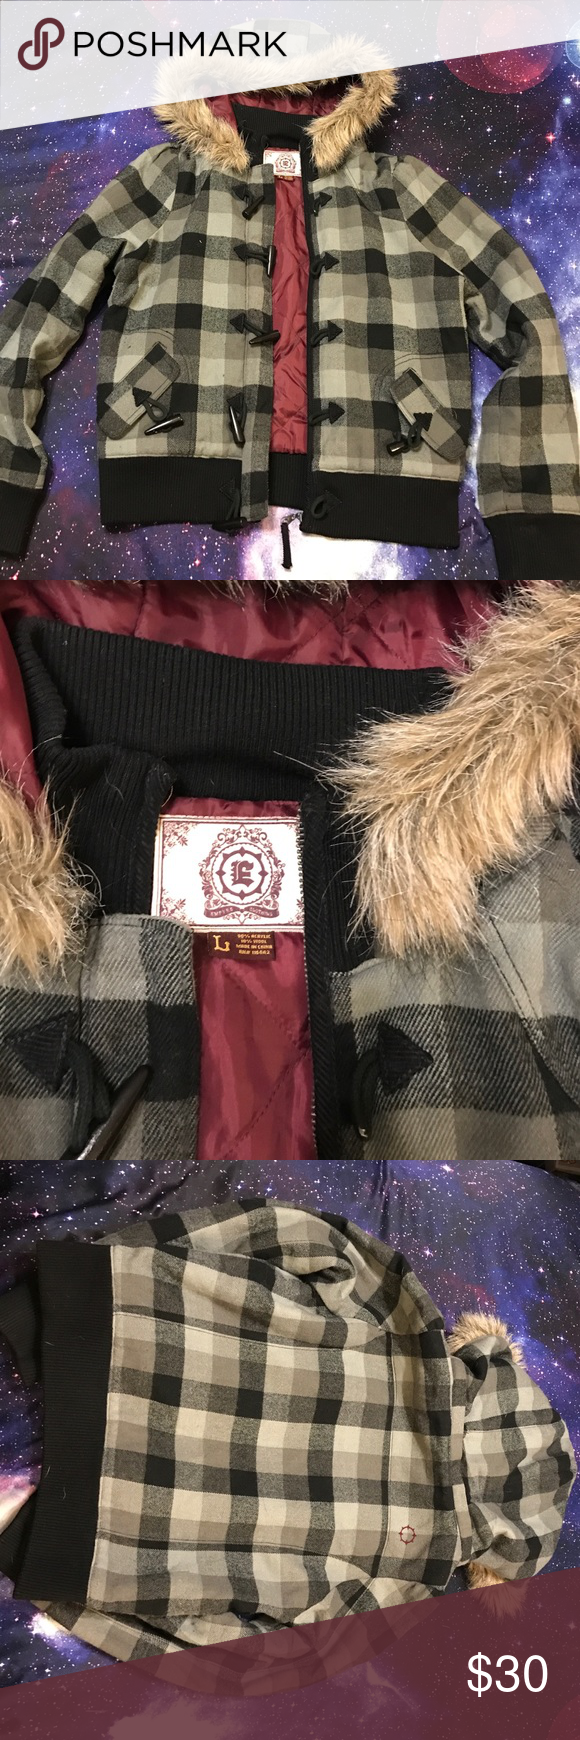 Empyre Clothing Winter Jacket This was purchased from Zumiez, but the specific brand is Empyre Clothing. This jackets has a burgundy liner with a fur lined hood, and wood toggles to button up the jacket. Questions? Just ask! Make me an offer! Empyre Clothing Jackets & Coats Puffers